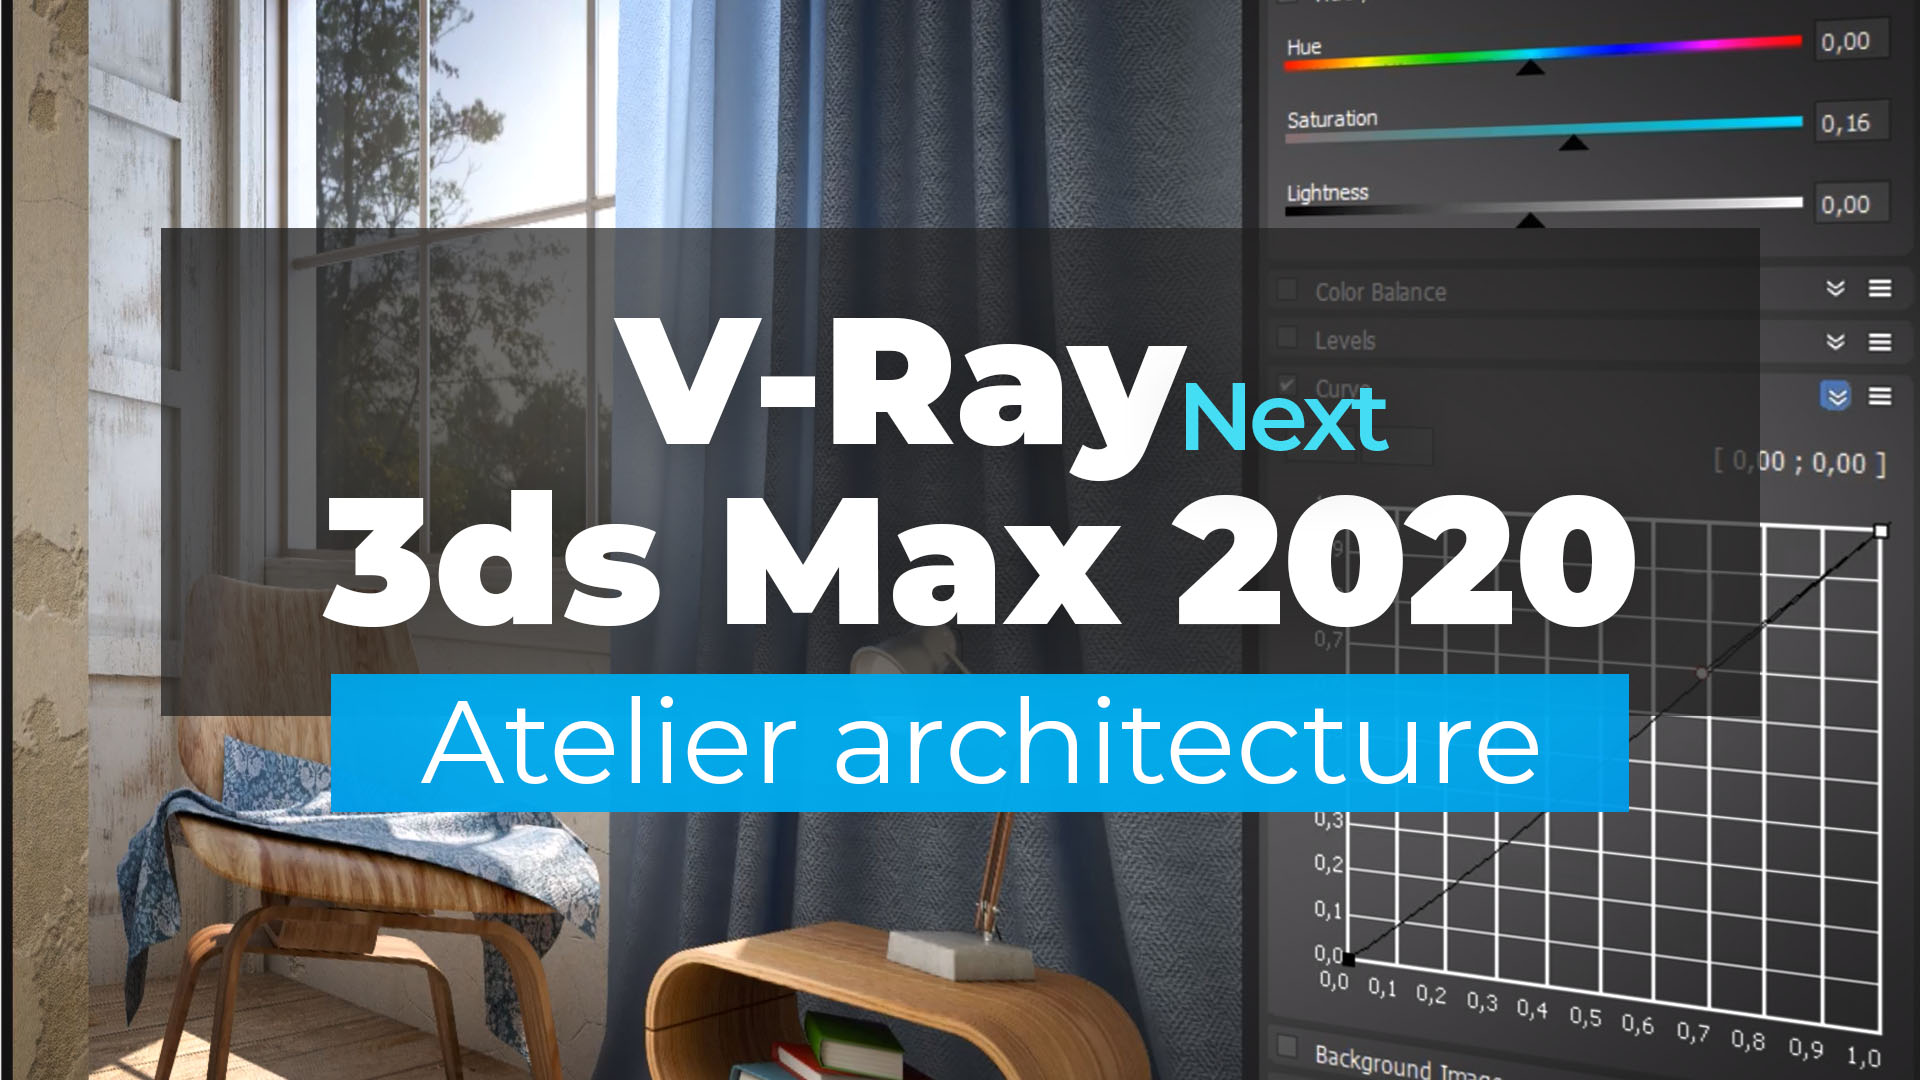 V-Ray Next et 3ds Max 2020 - Atelier architecture